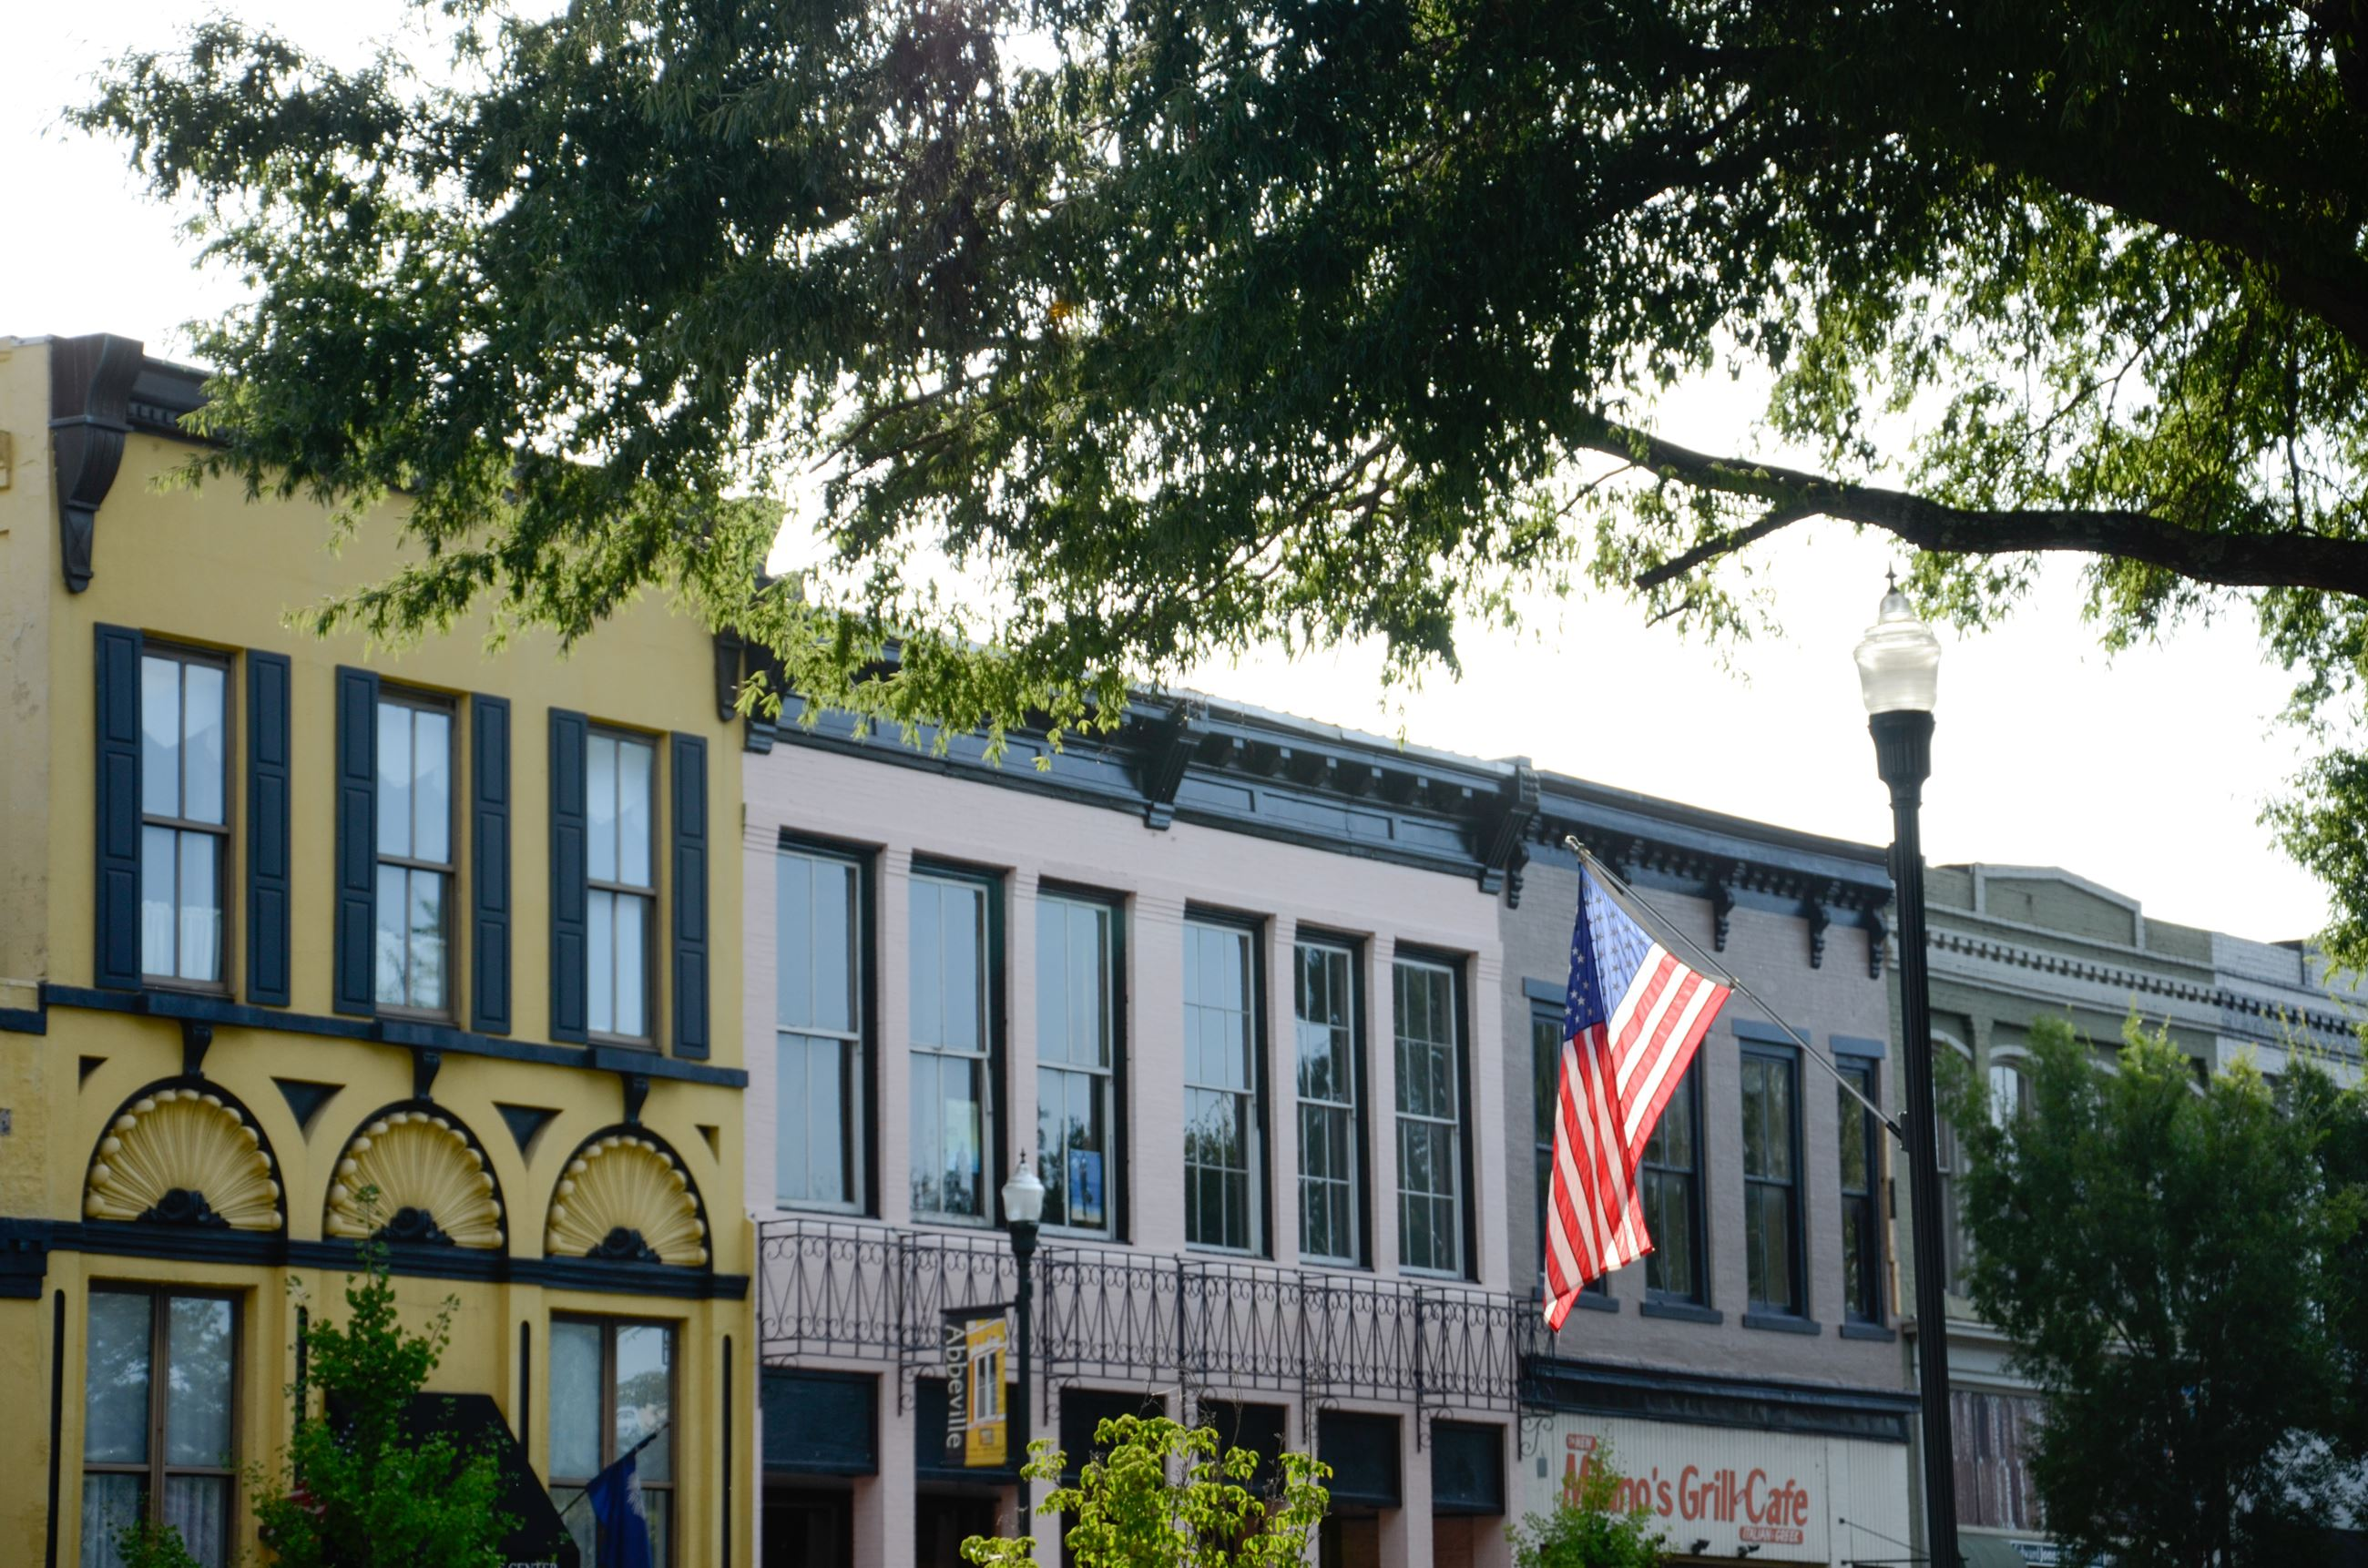 Image of Abbeville Square with American Flag